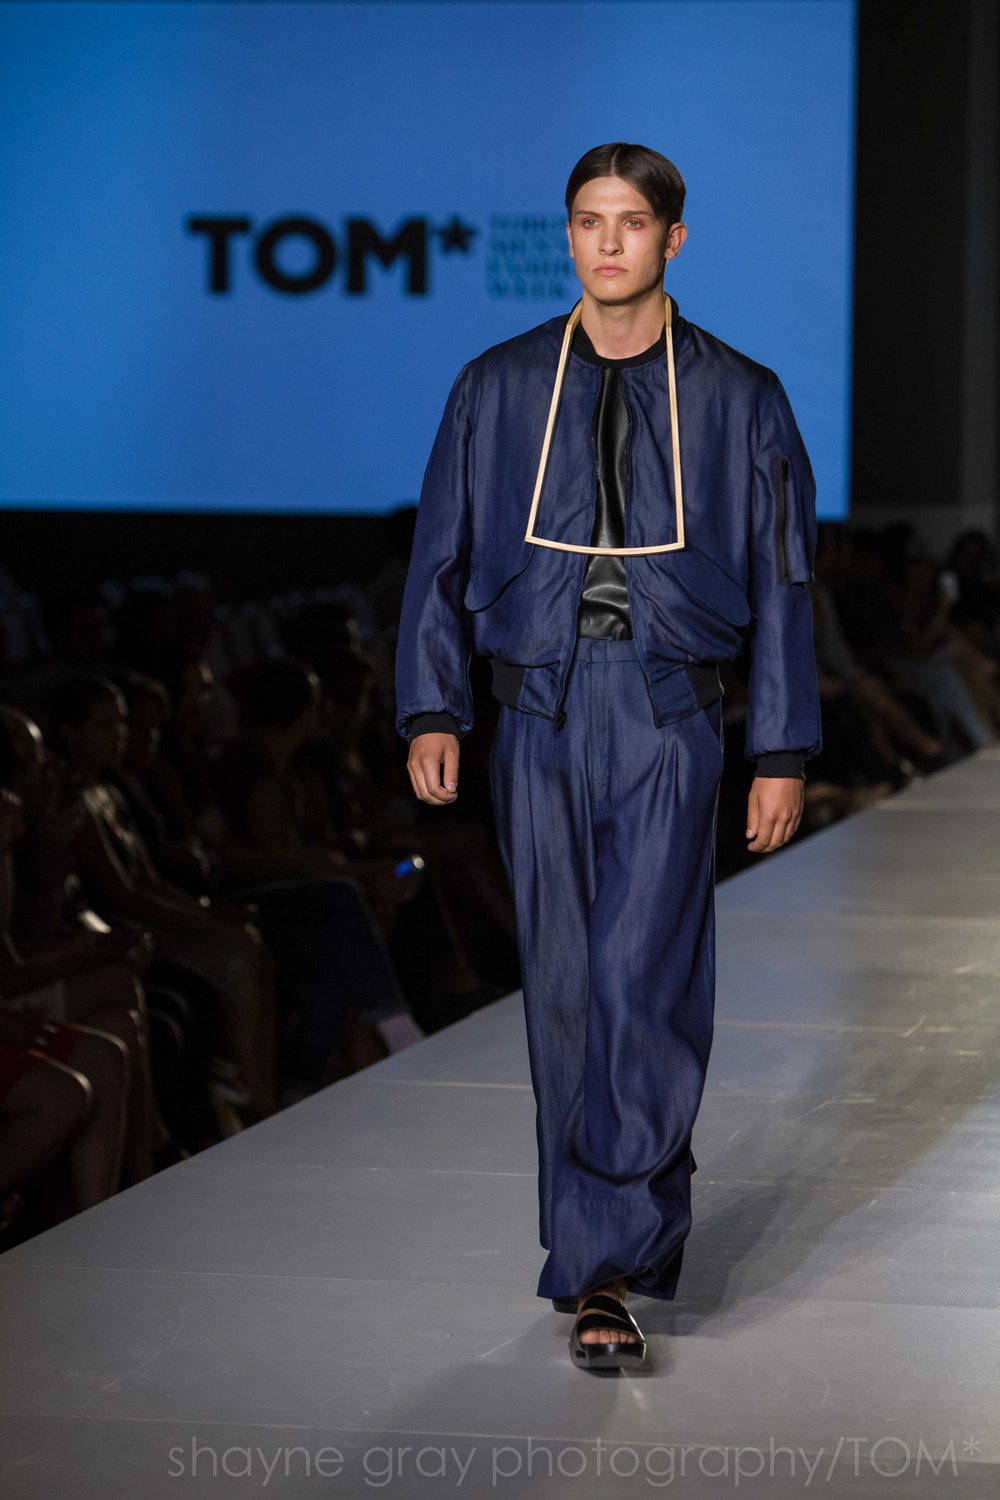 Shayne-Gray-Toronto-men's-fashion_week-TOM-wrkdept-8700.jpg